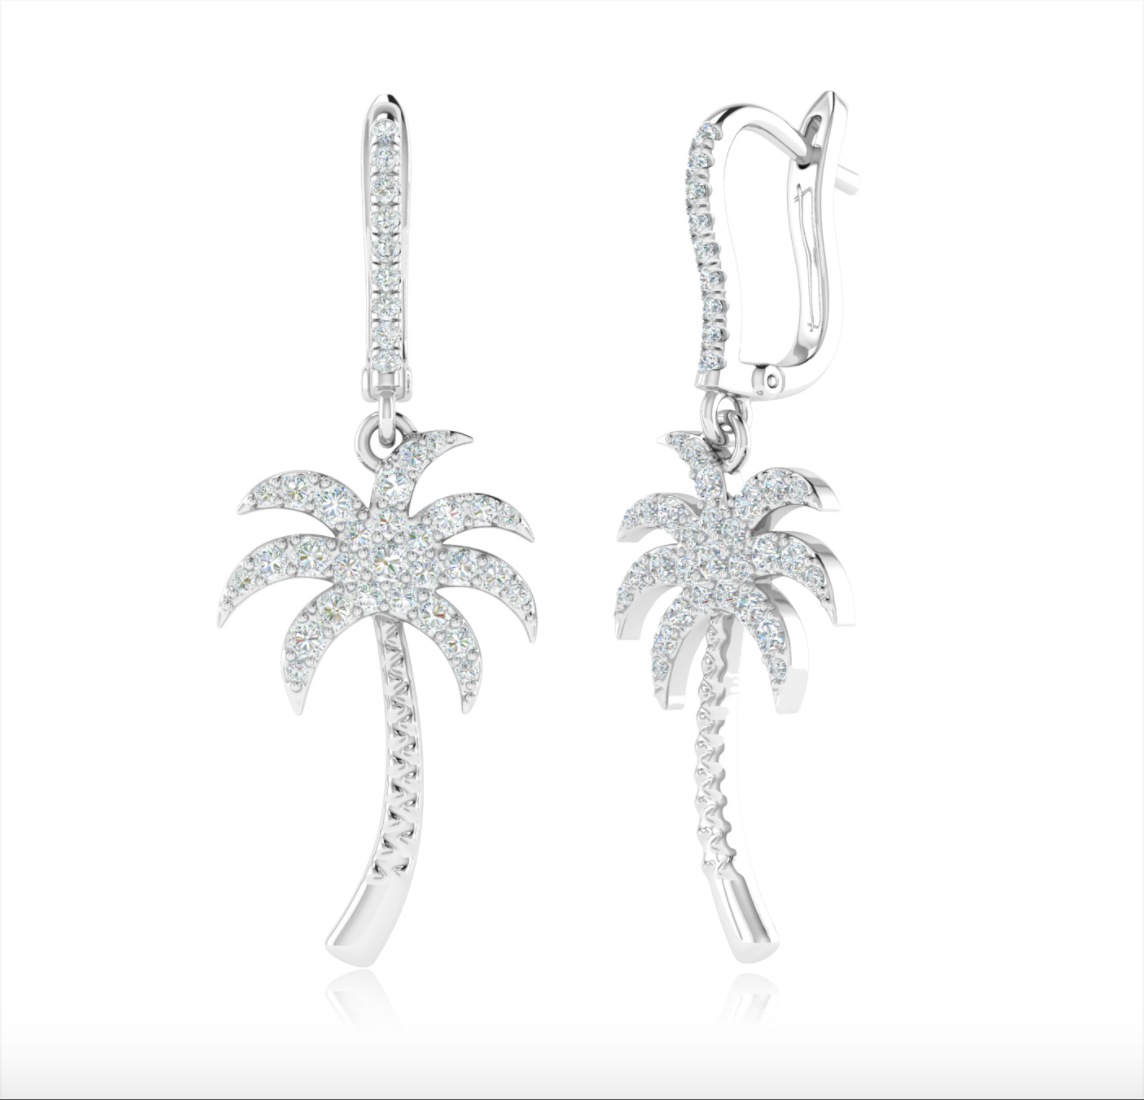 14kt Gold Palm Tree Earrings Available in Two-Tone, White or yellow Gold